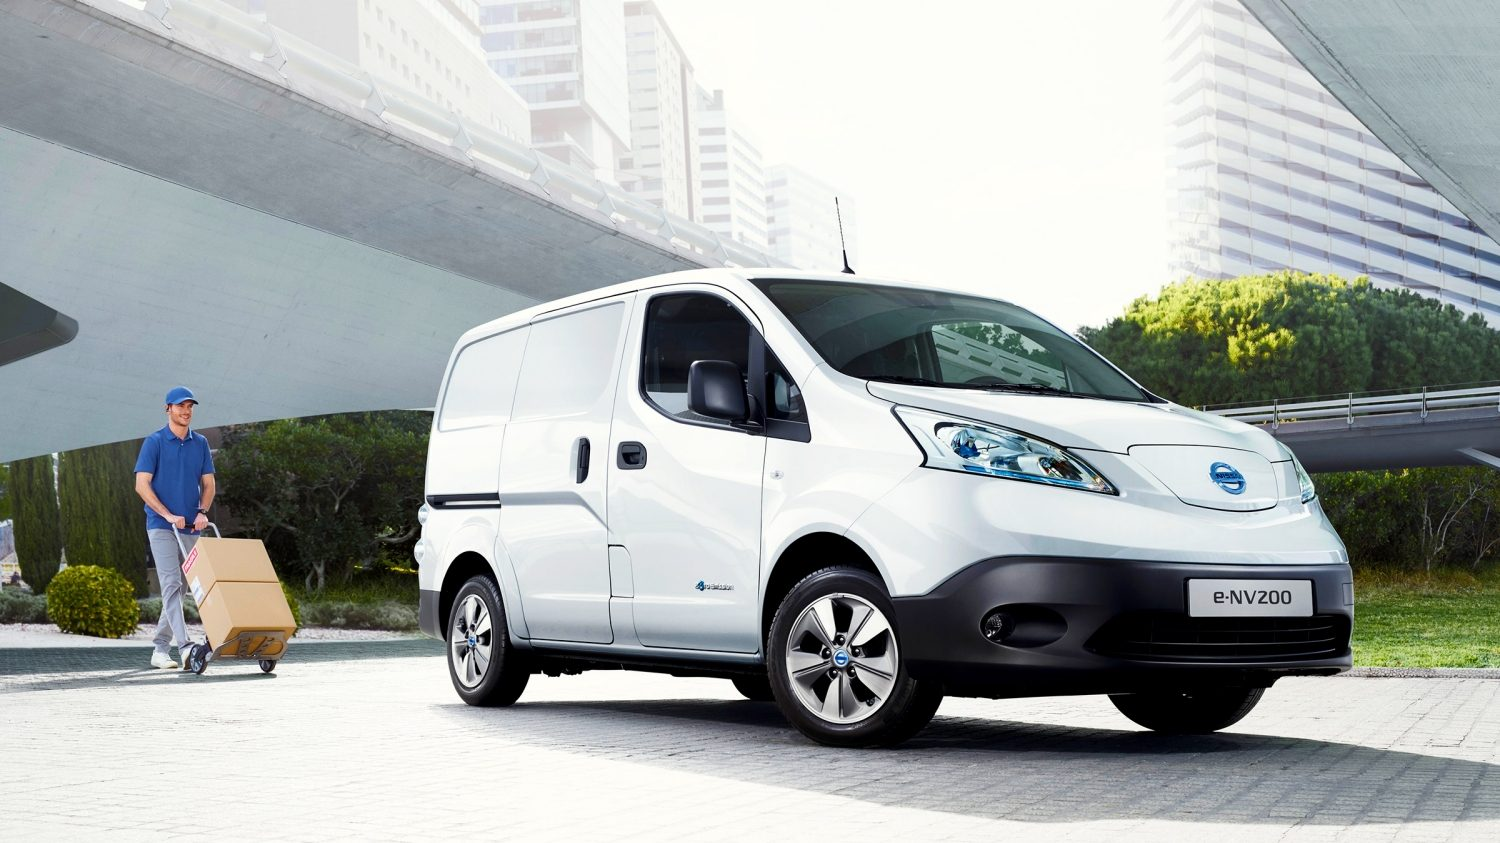 New Nissan e-NV200 3/4 front with a man going to the car with a hand trolley